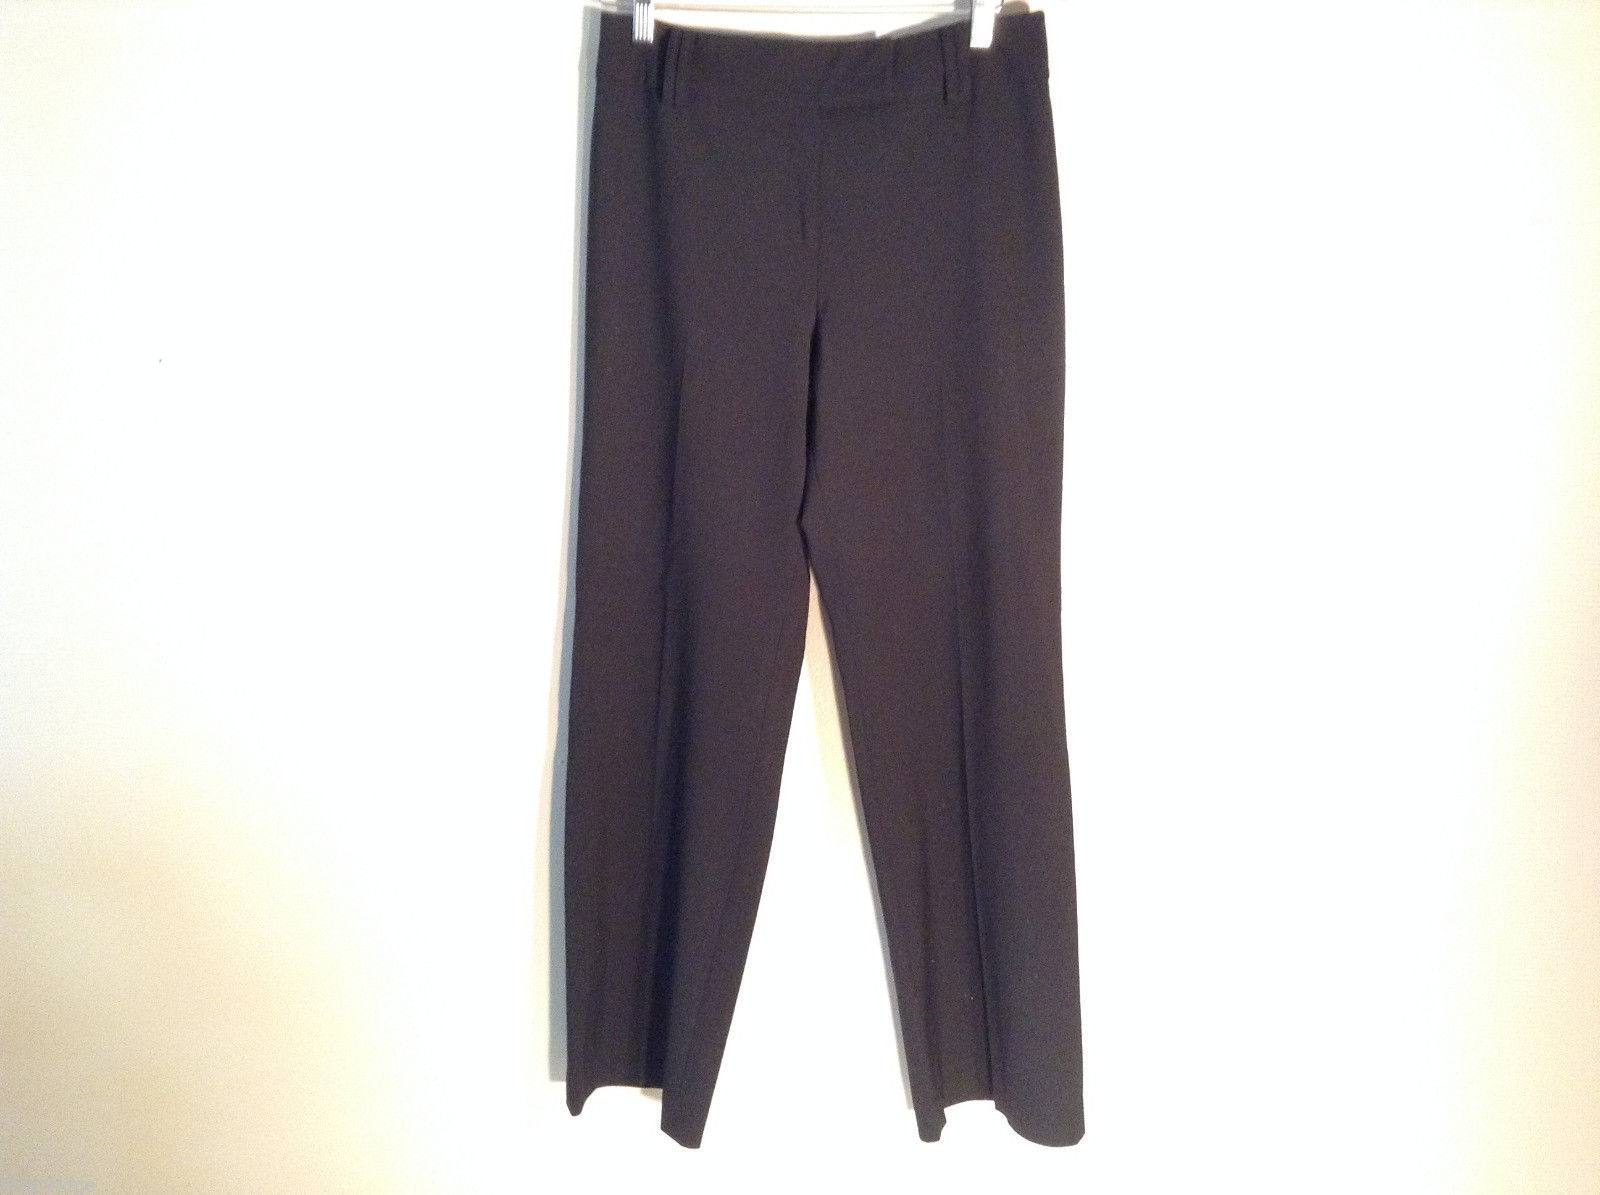 Womens Ann Taylor Loft Size 6 Black Casual Dress Pants Synthetic blend